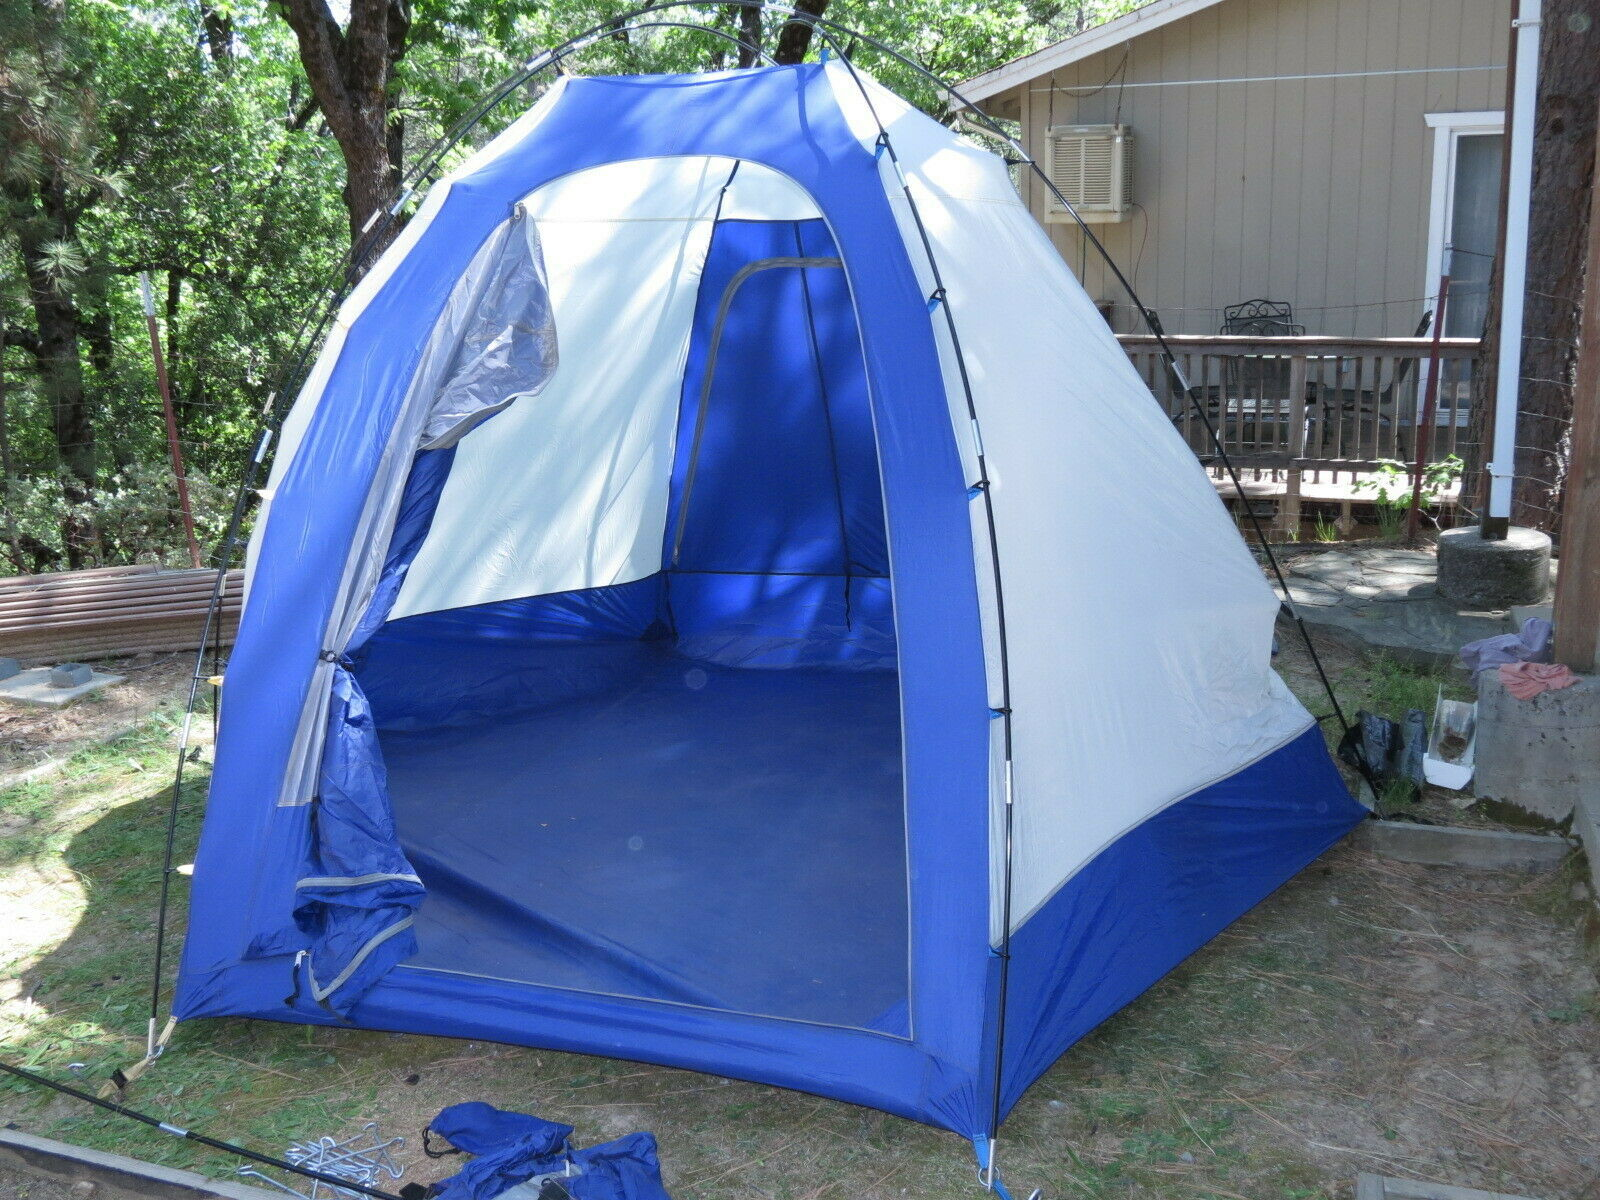 LL BEAN 6-person Hex Dome camping tent w/ accessory awning vestibule, nice used